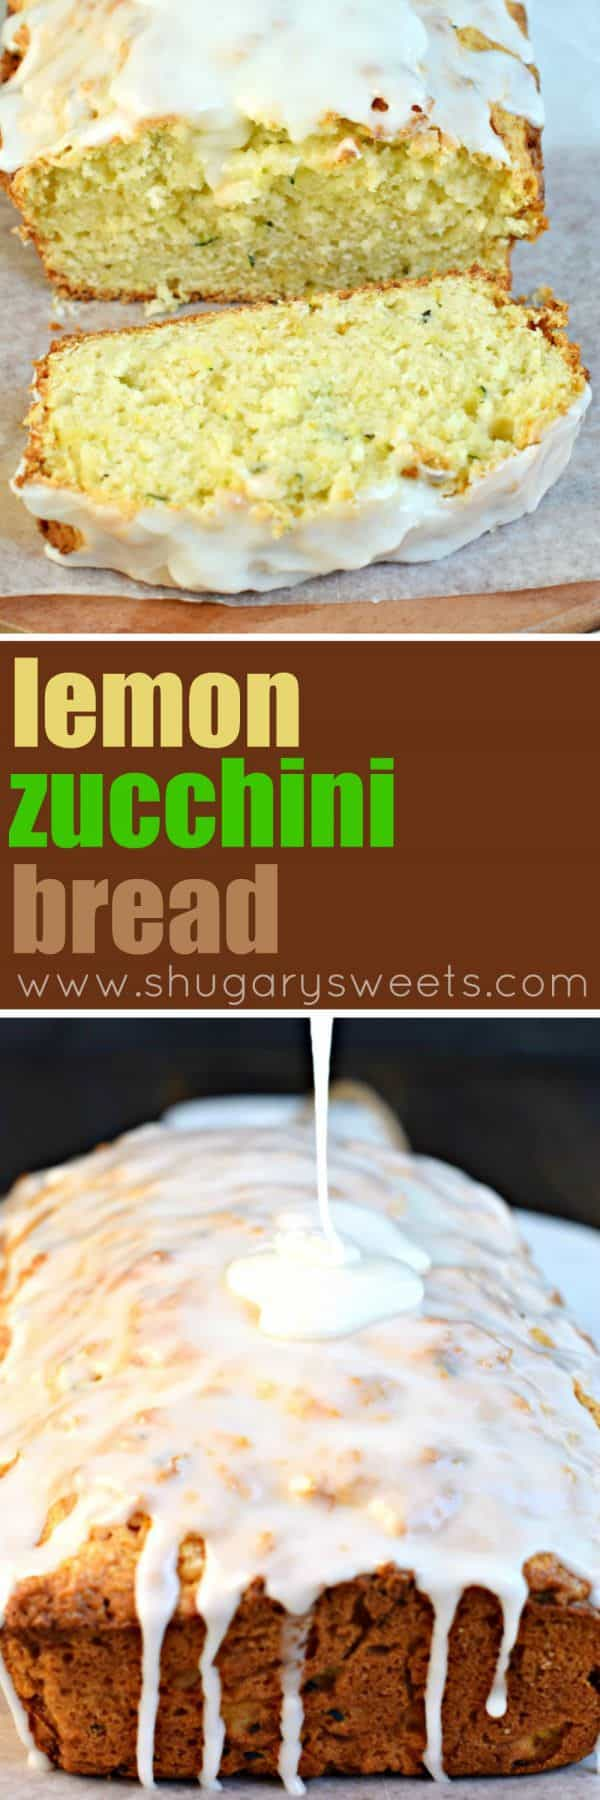 Enjoy a slice of this incredibly sweet and moist Lemon Zucchini Bread for breakfast, brunch or as an evening treat! It won't disappoint!